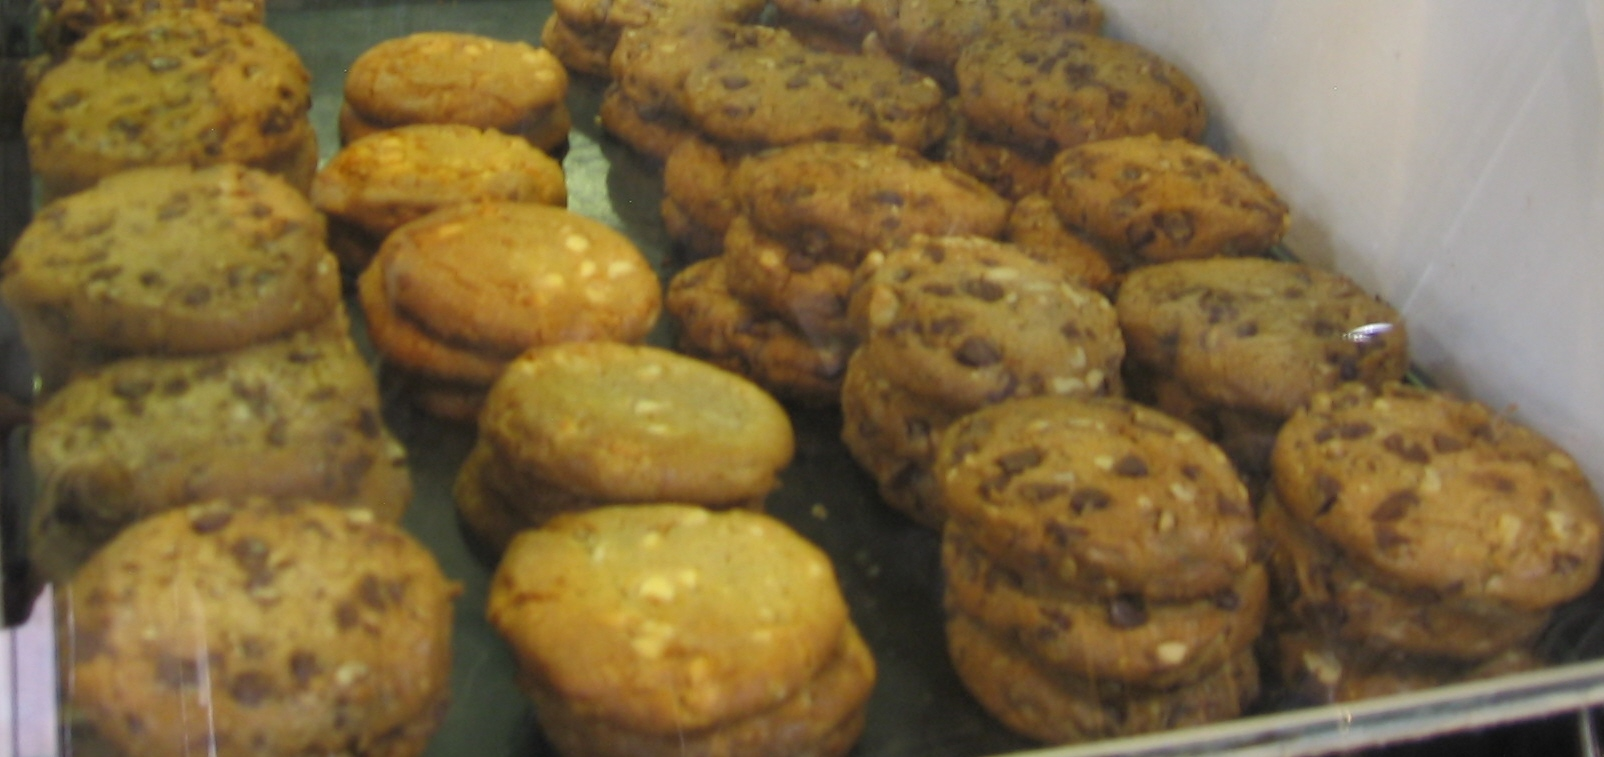 Famous 4th St. Cookies: You know you want one